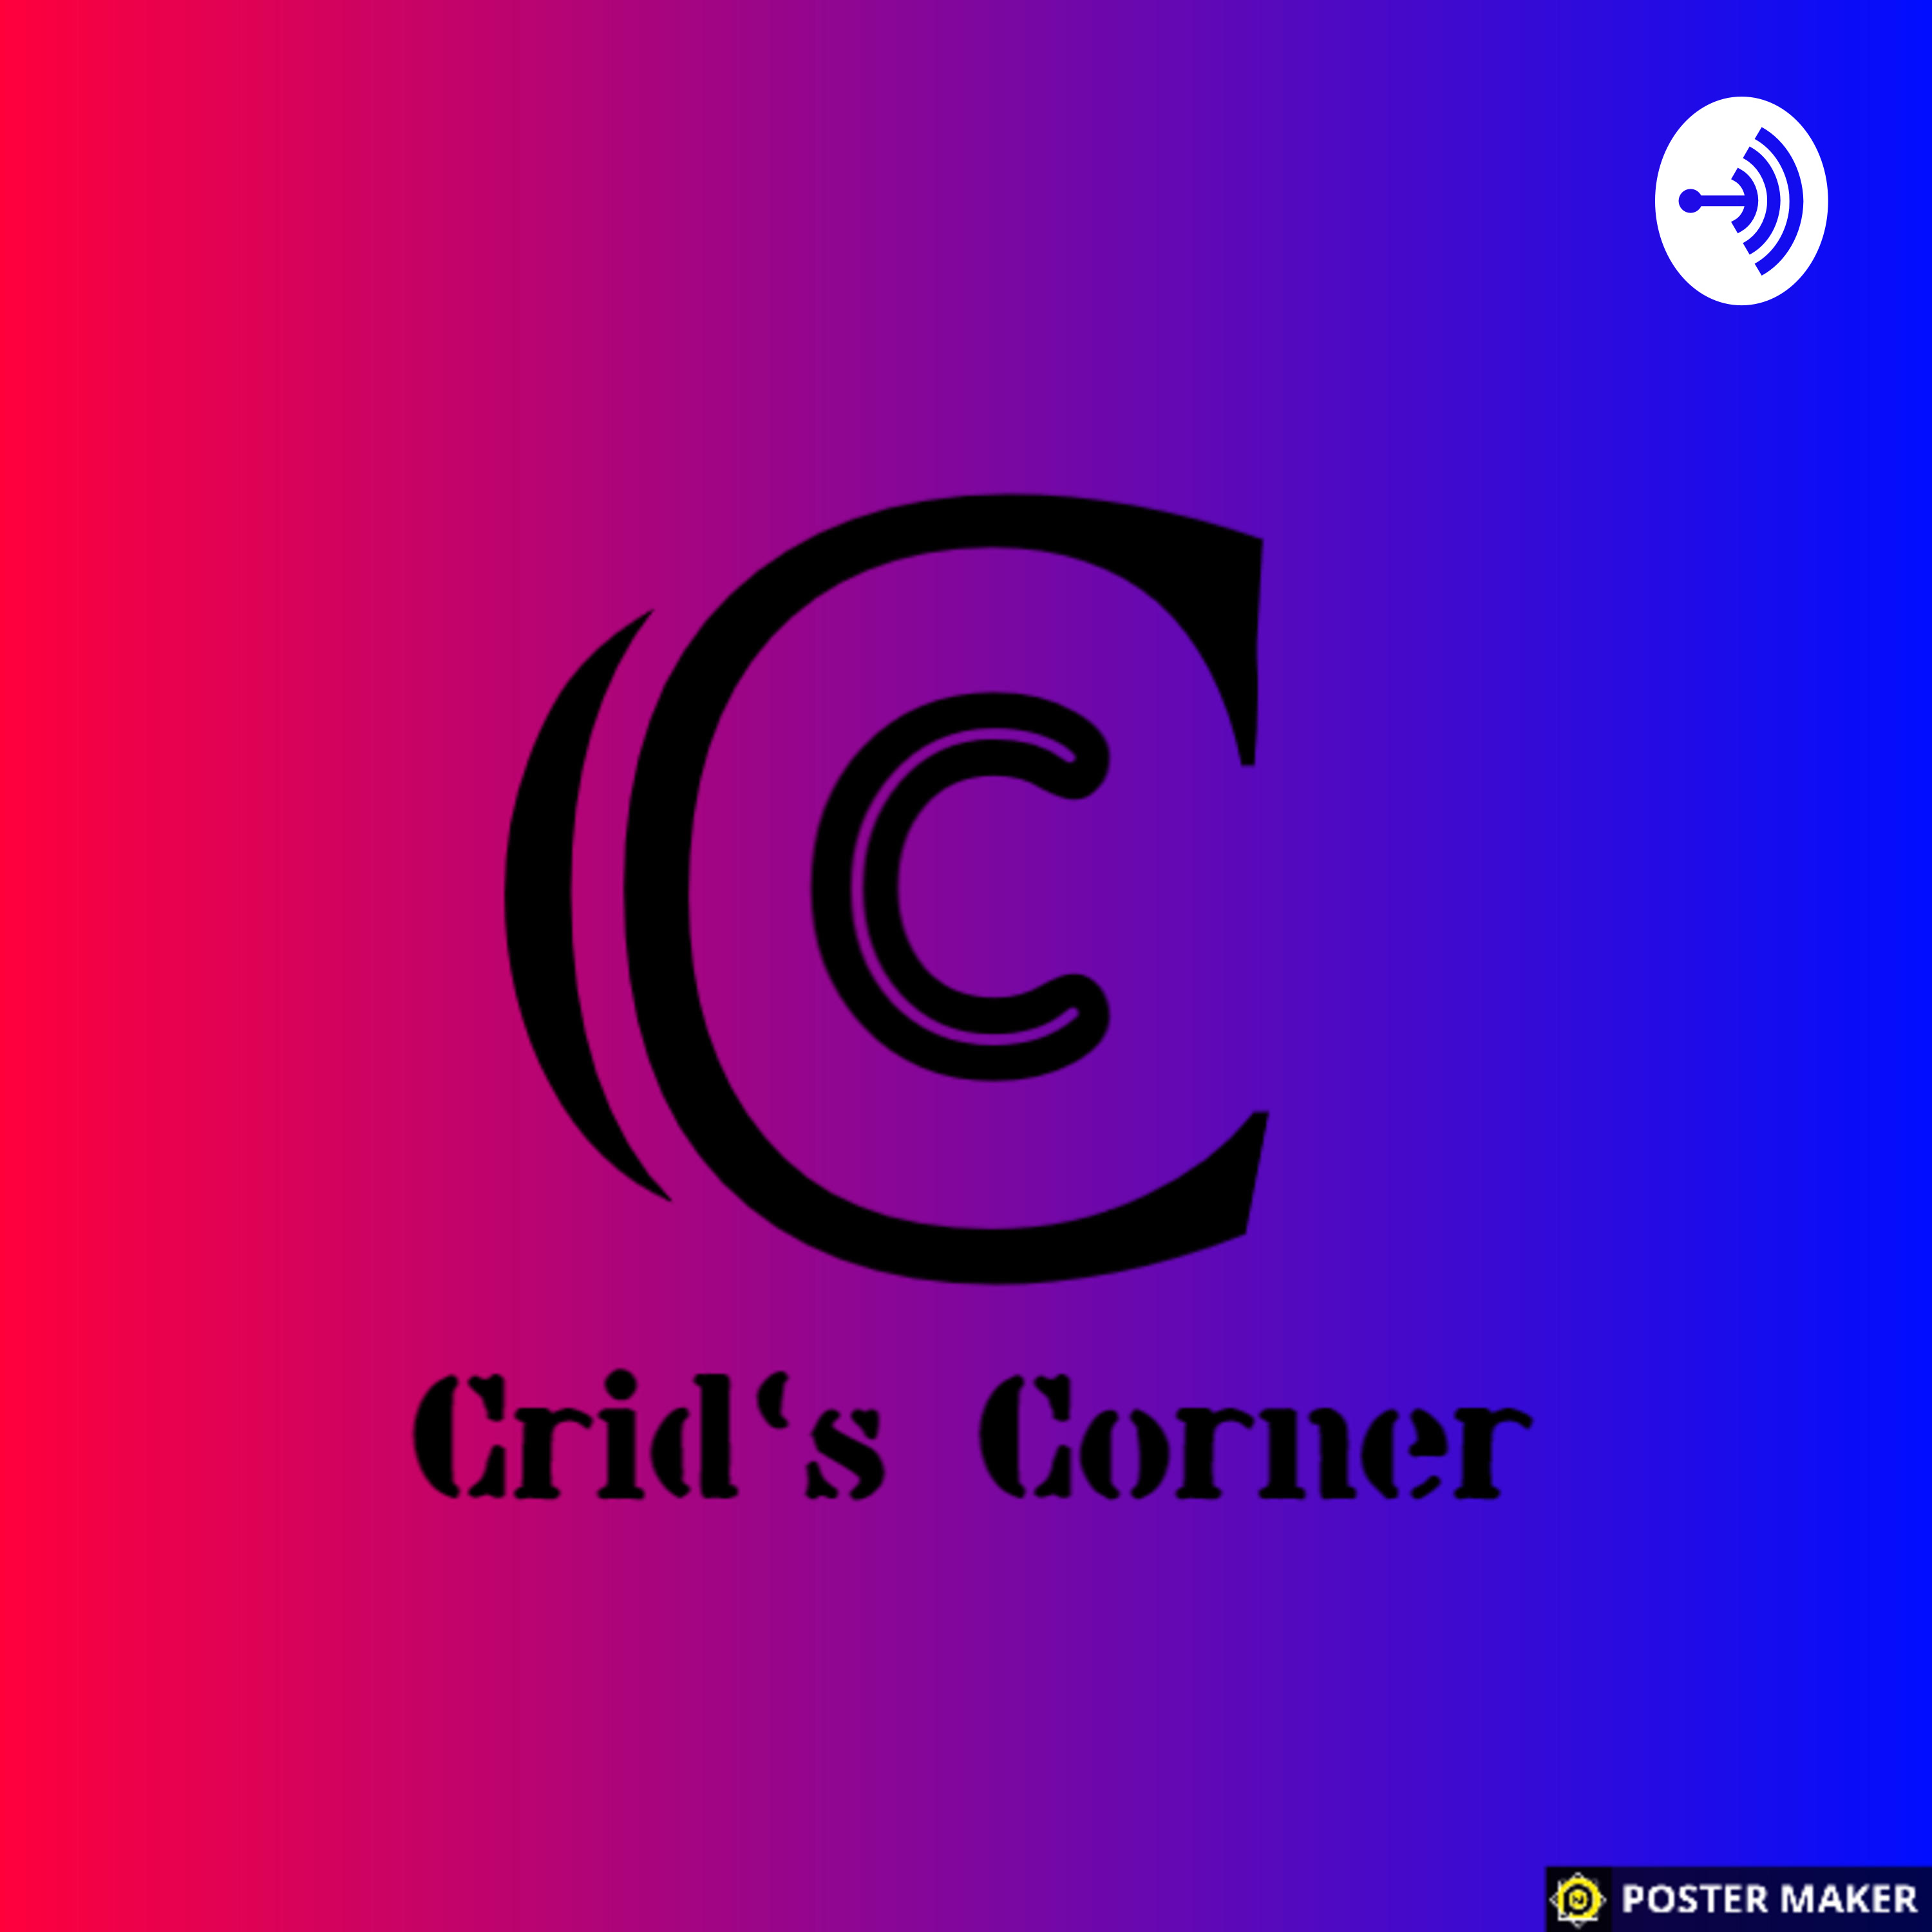 CRID'S CORNER on Jamit